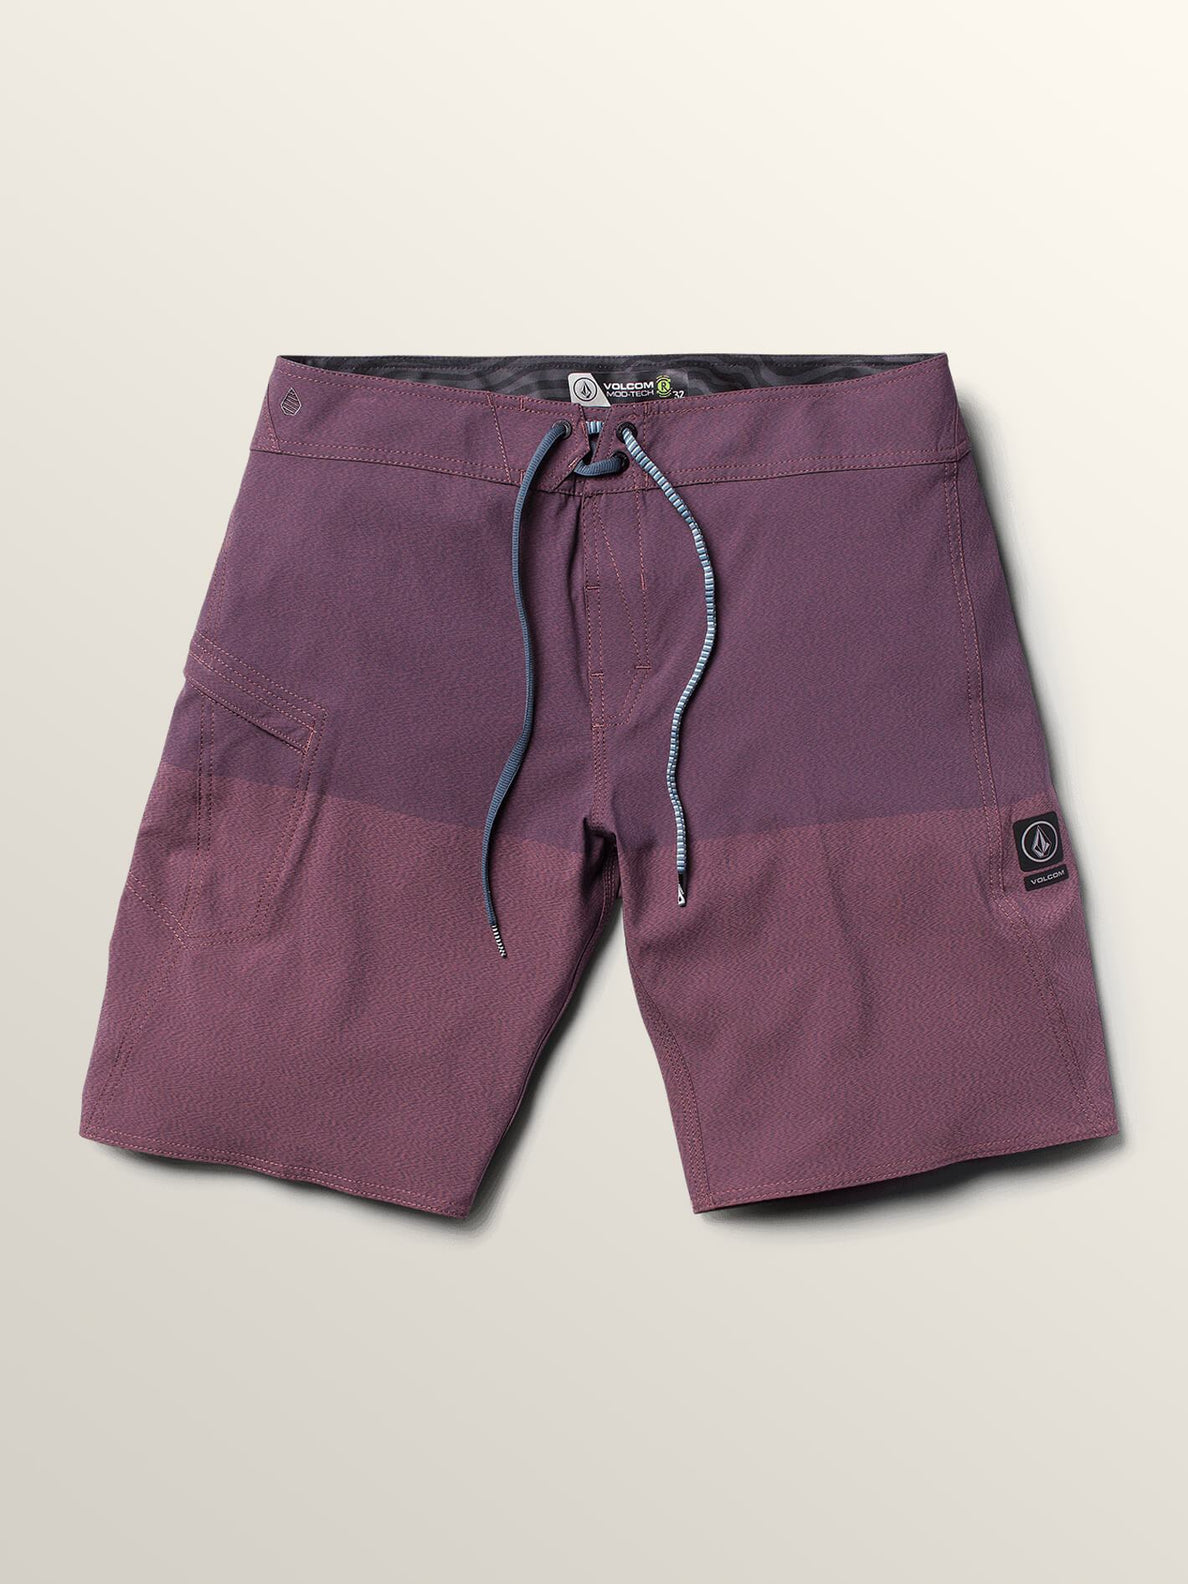 Lido Heather Mod Boardshorts In Deep Blue, Second Alternate View